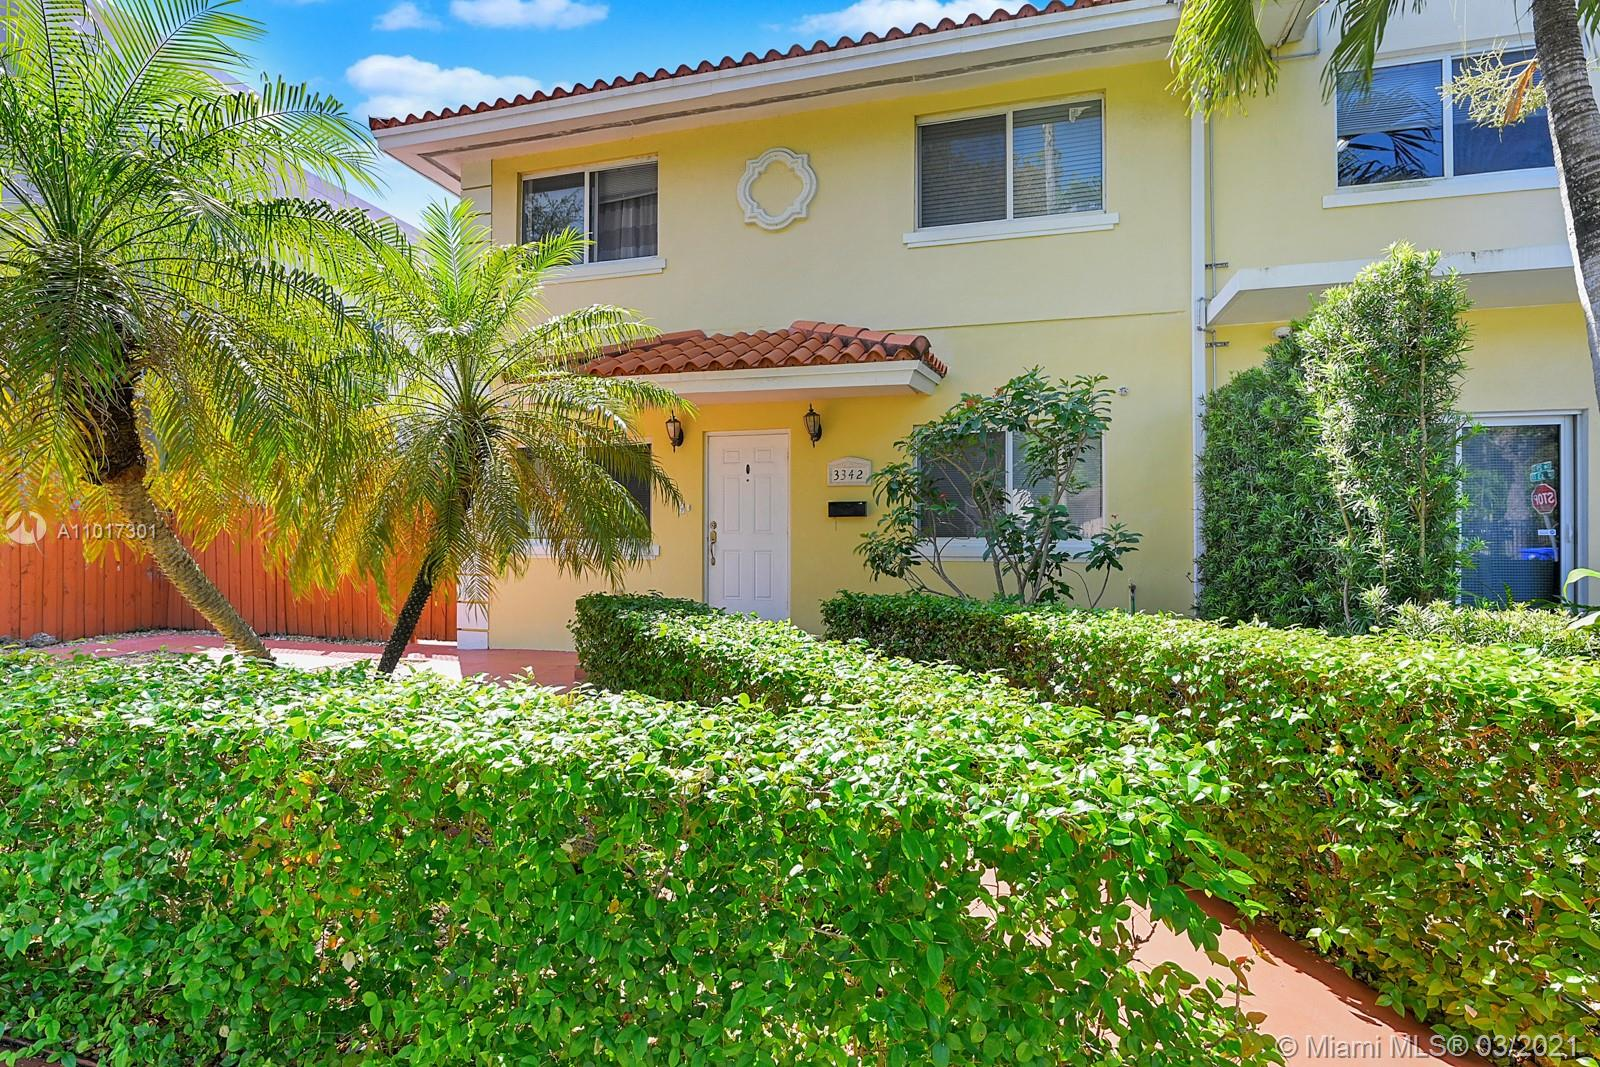 Don't miss a piece of the Miami Lifestyle, Villa Toscana of Miami located in the #1 State of USA, Consisting of 6 rooms/5ba, separated by door so you can use as 4/3 and 2/2 if wanted with individual entrances in the front and rear. Hurricane Impact Windows & Doors. Located within 2-18 minutes to 3 Marinas •Coconut Grove •Downtown Miami •Brickell •Virginia Key •Key Biscayne •4 beaches •Water sports •Shopping •Dinning & more. Income potential as a short-term rental is amazing, I`ve  attached comps+ I&E, Ask broker. Buy next door 3340(A11016647) ,Making it a TOTAL of, 13 rooms+ 10.5 Bath baths, Plenty of parking, Have the best of both worlds that of enjoyment & the other Making a huge return on Investment. Must submit DU or POF before scheduling appointment.